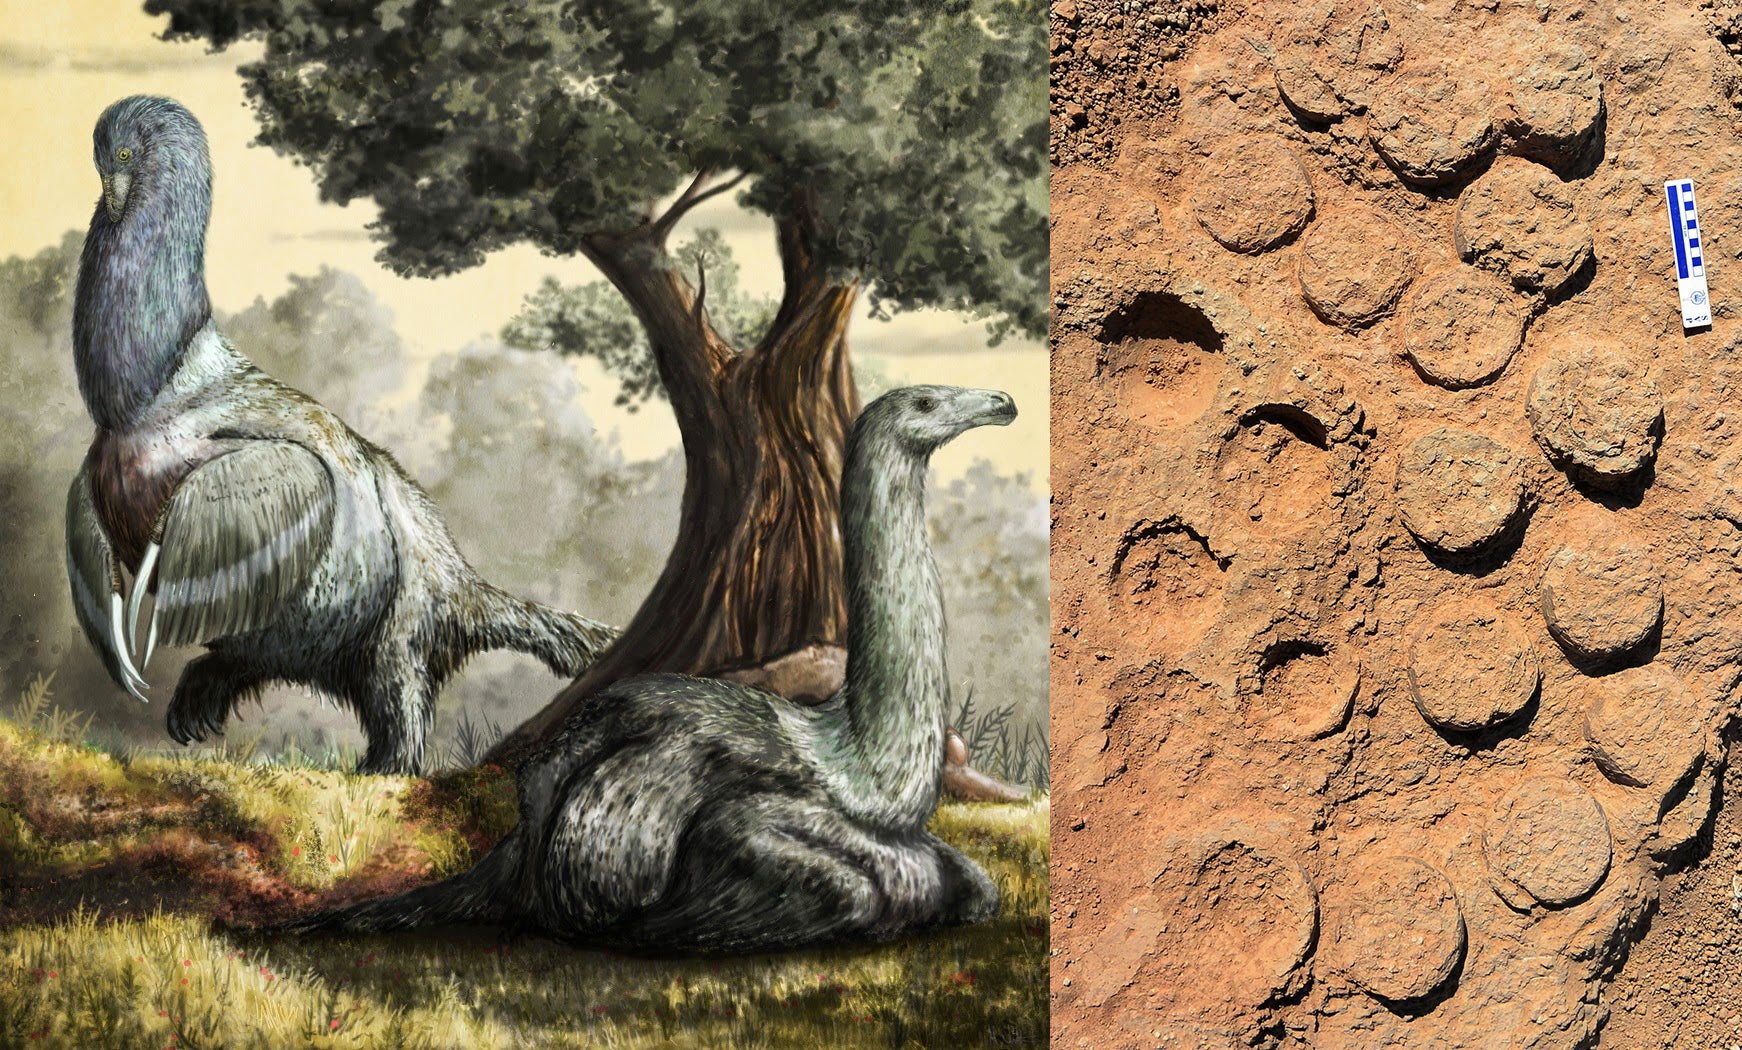 A dinosaur egg bonanza is helping ecologists understand prehistoric parenting